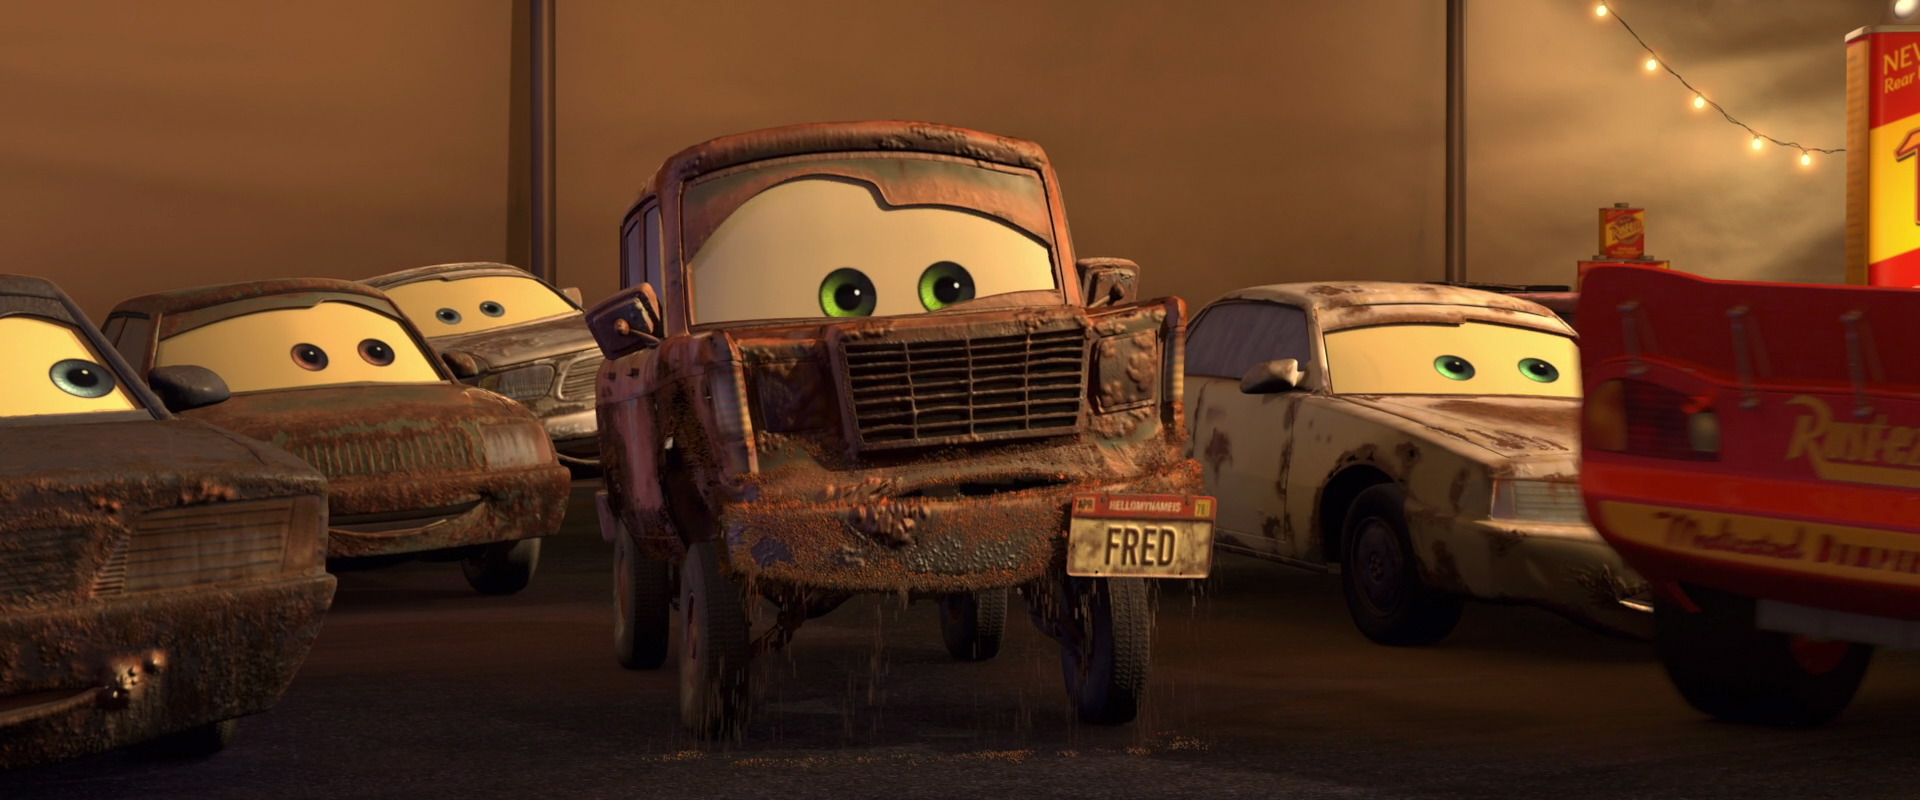 fred-personnage-cars-01